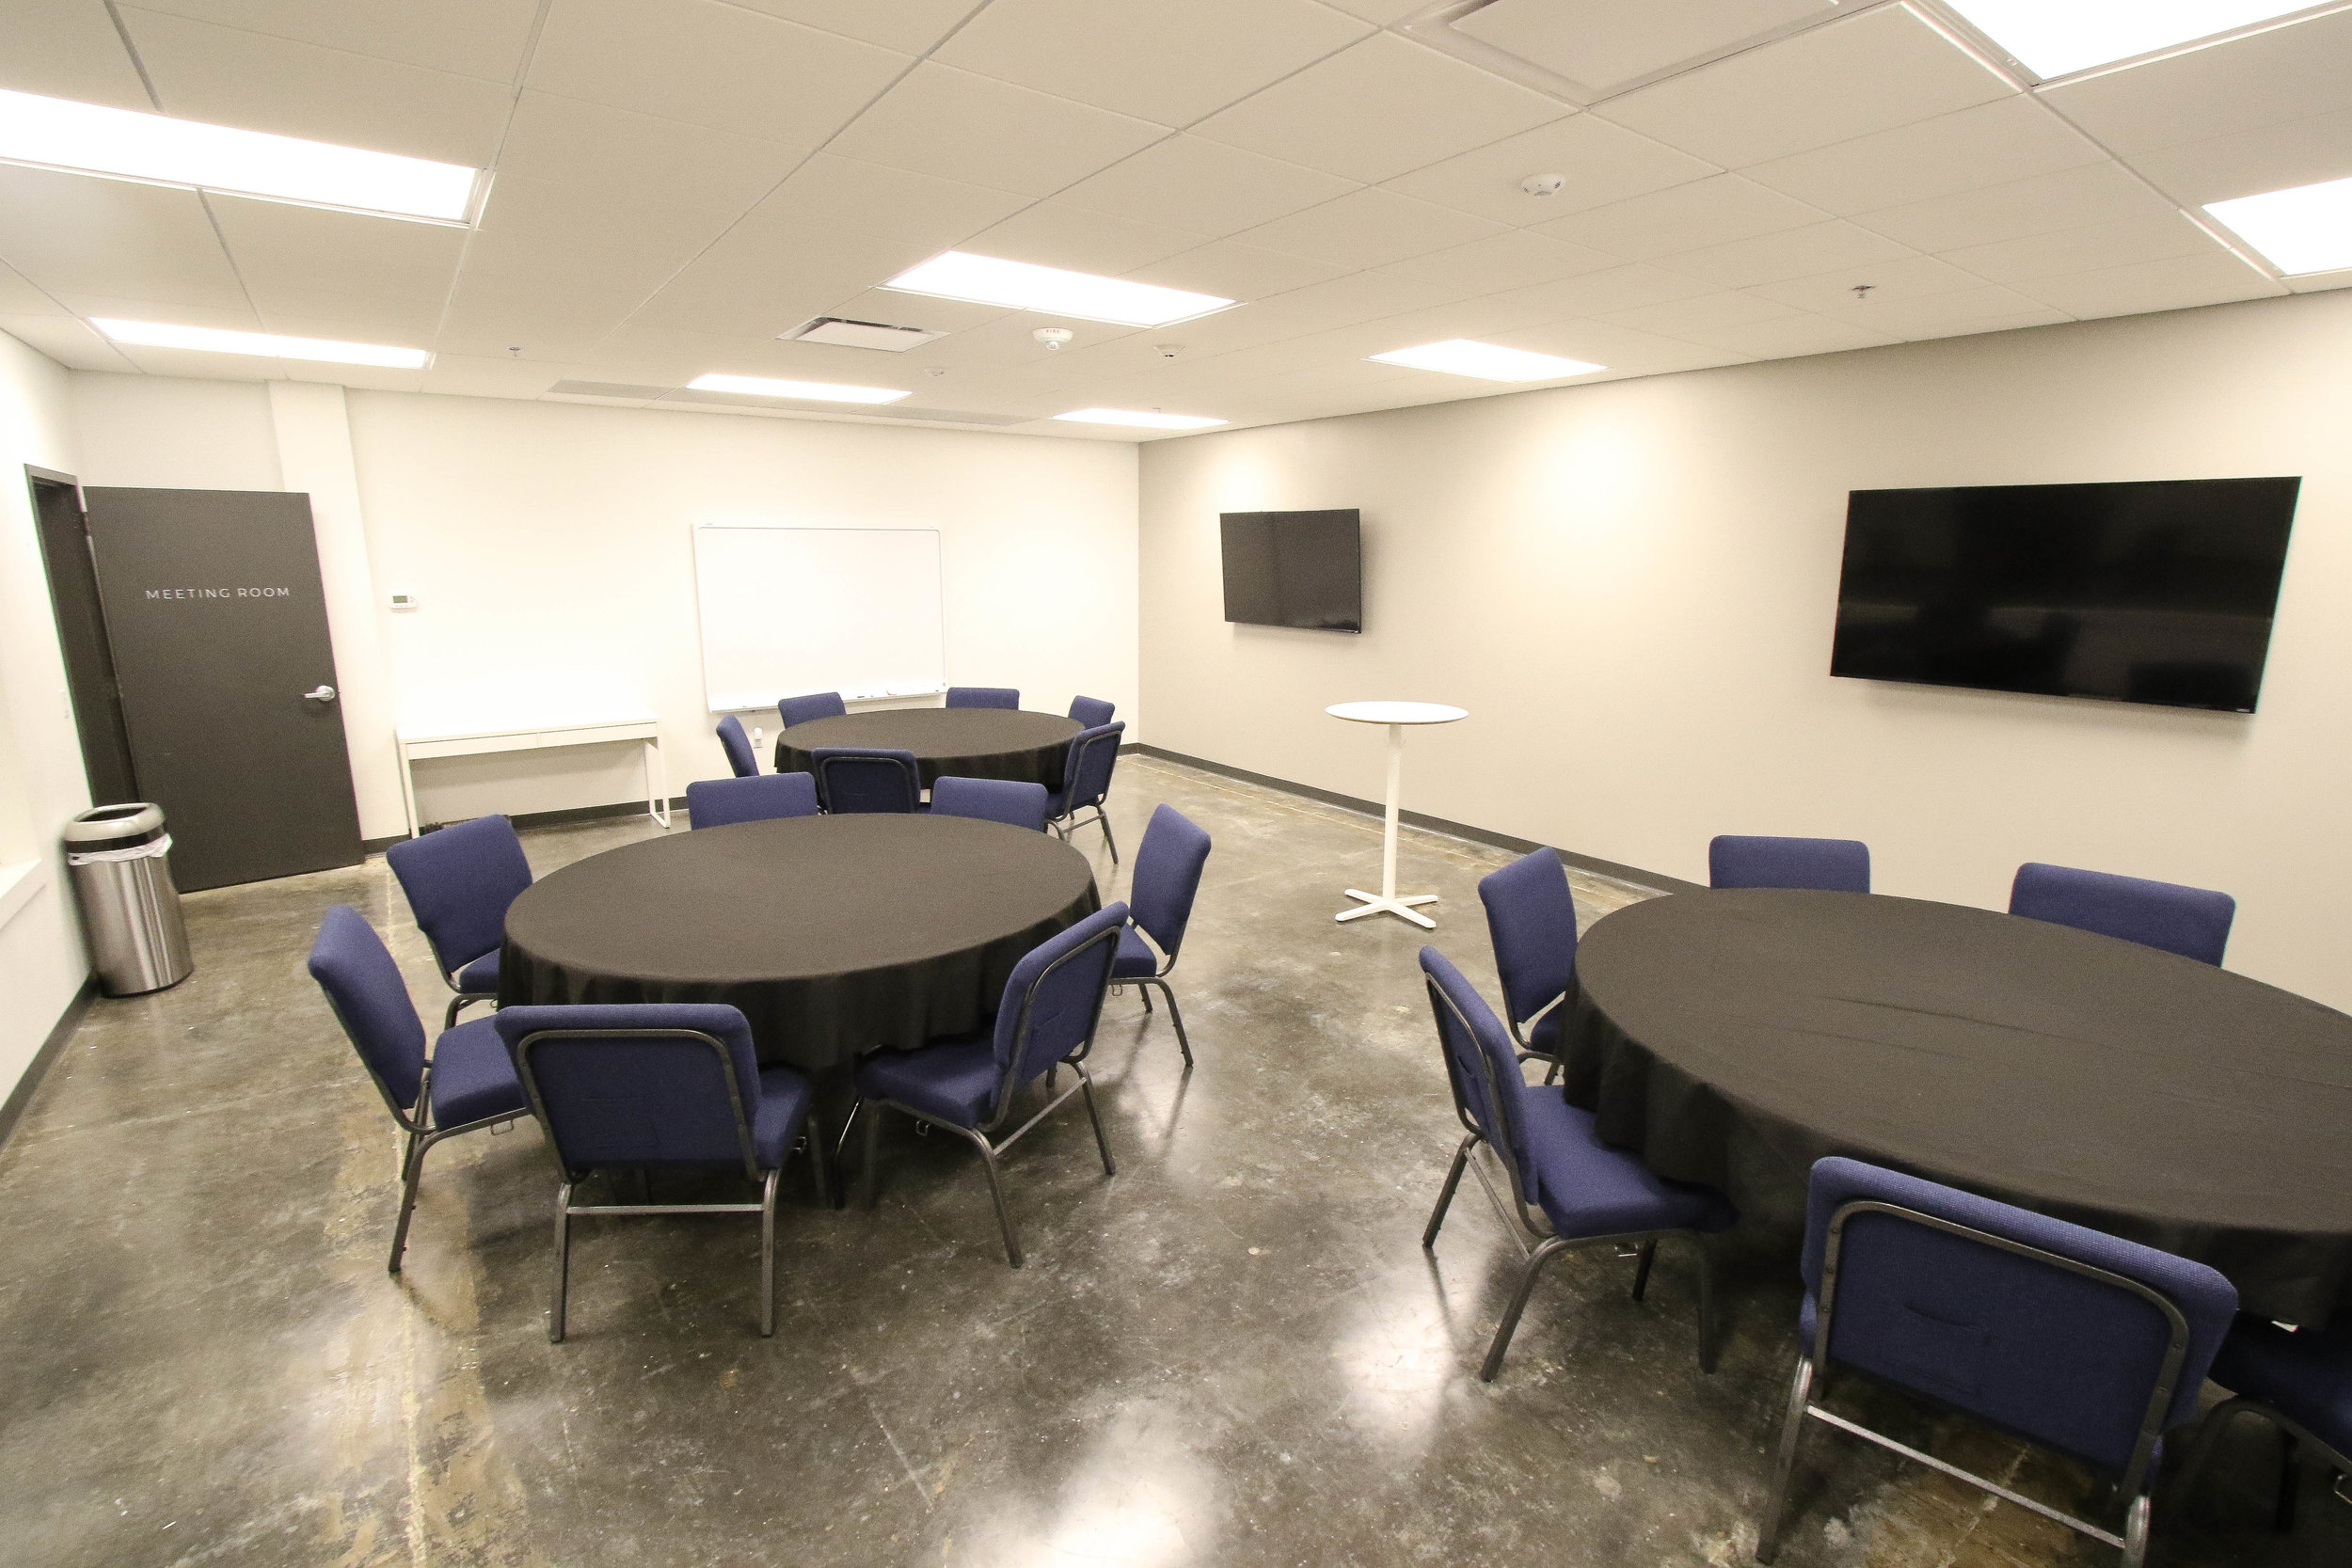 mmeting room 2.jpg